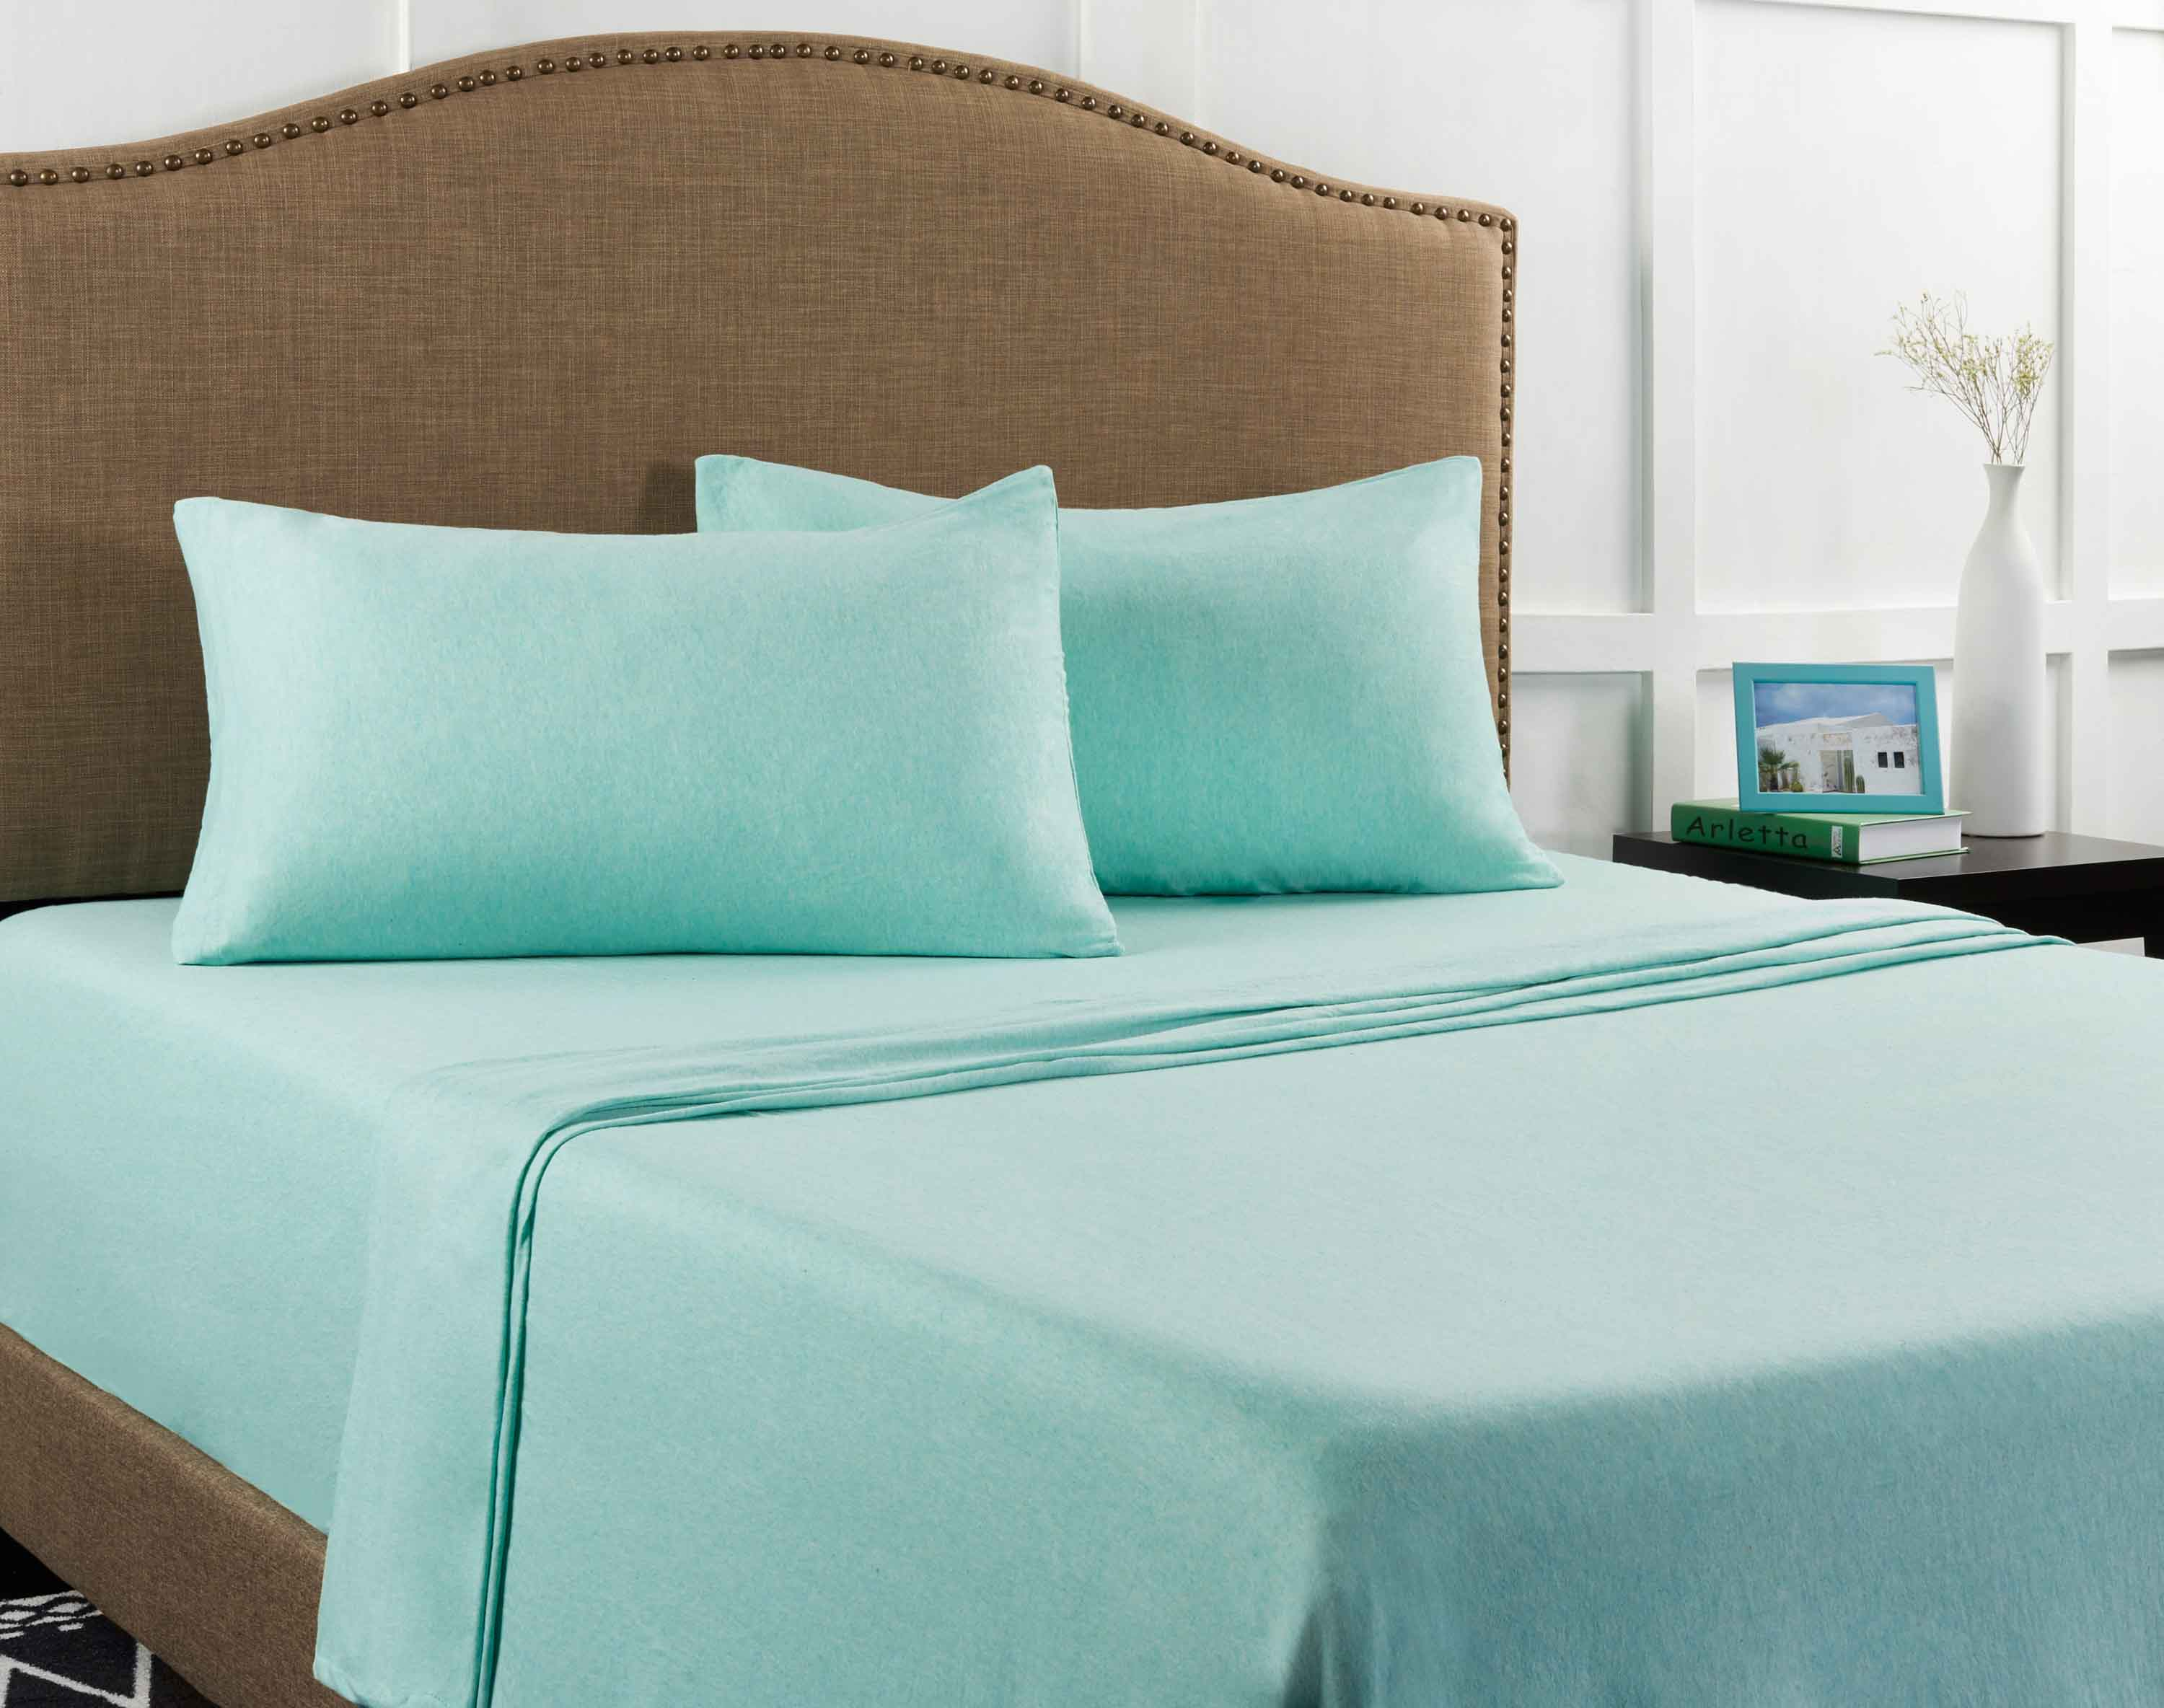 Mainstays Knit Jersey Sheet Set   Walmart.com